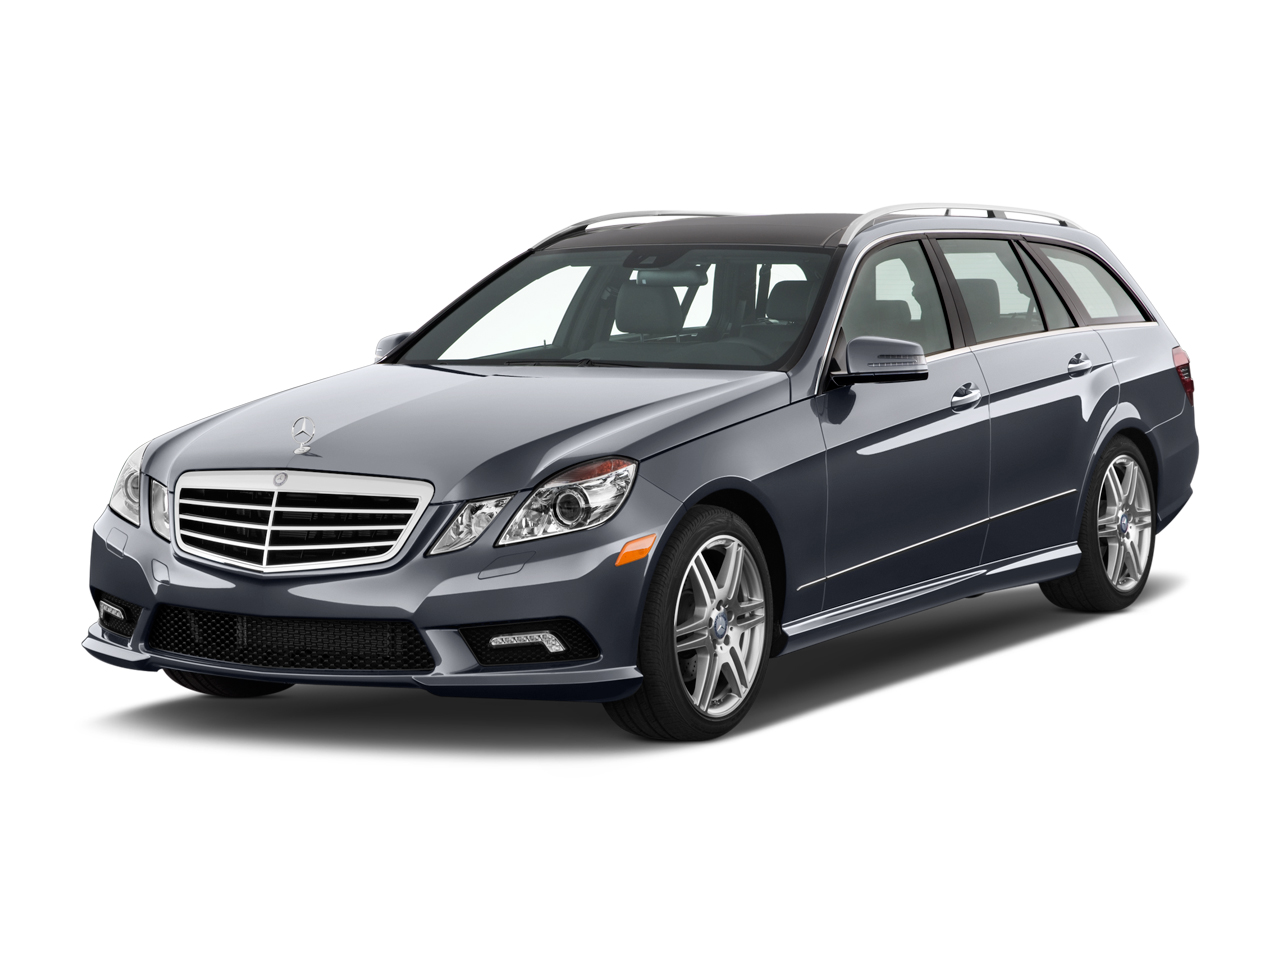 2011 mercedes benz e class gas mileage the car connection. Black Bedroom Furniture Sets. Home Design Ideas